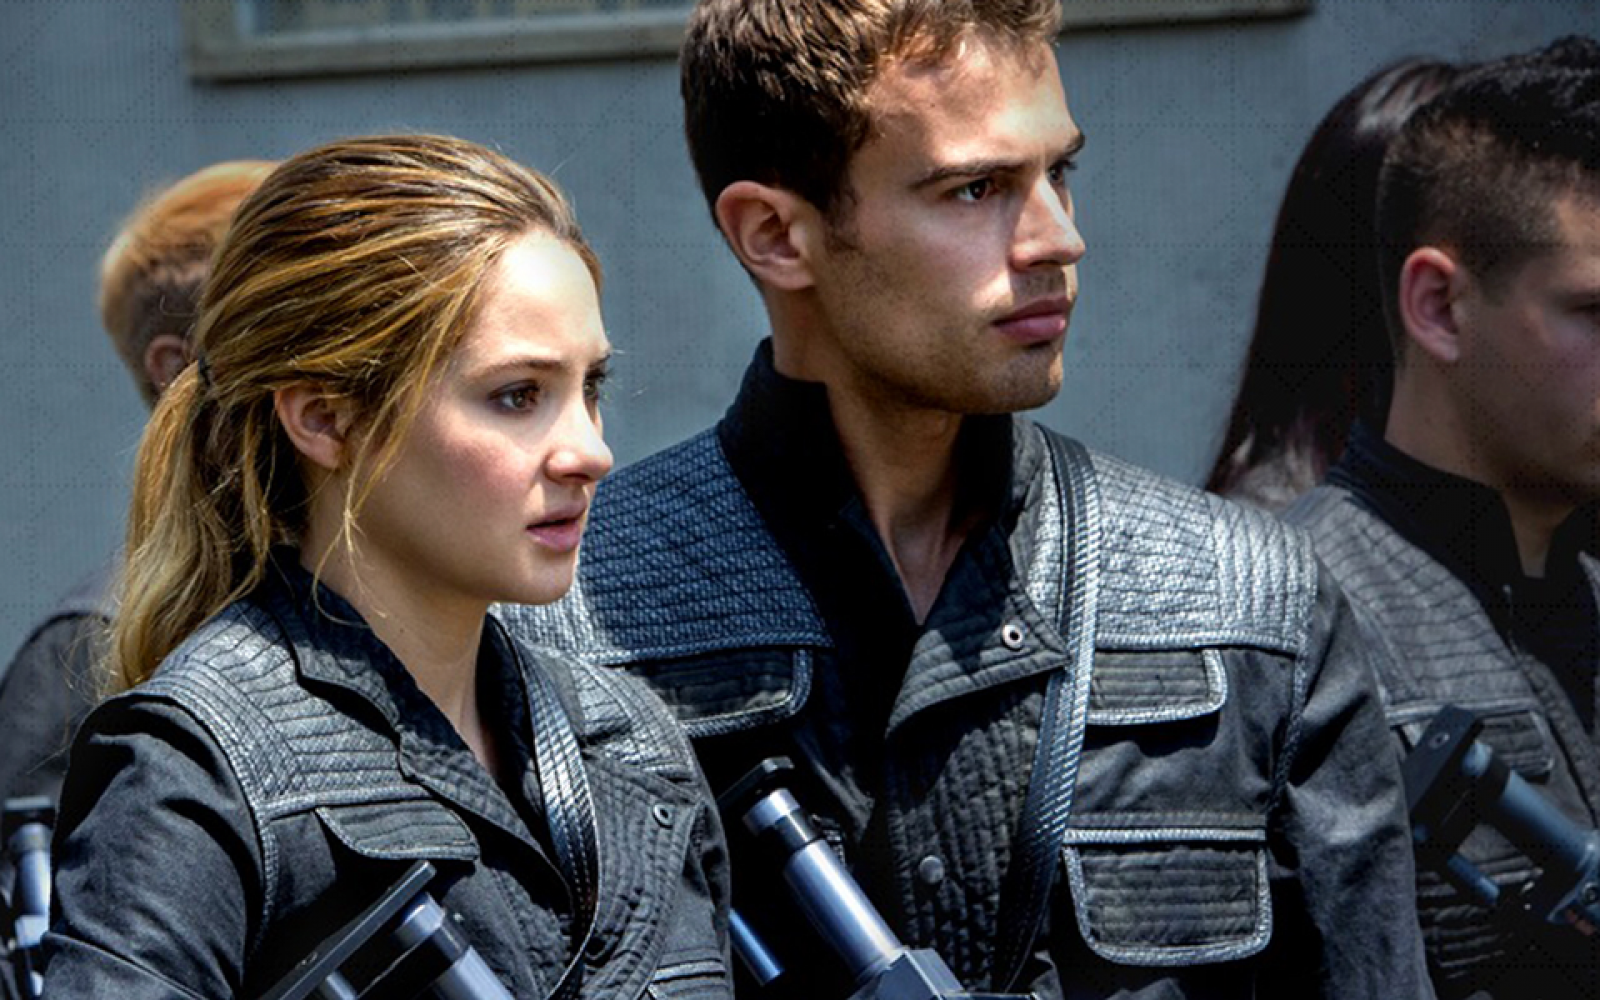 50 Empowering Quotes About Finding Your Inner Strength From 'The Divergent Series'